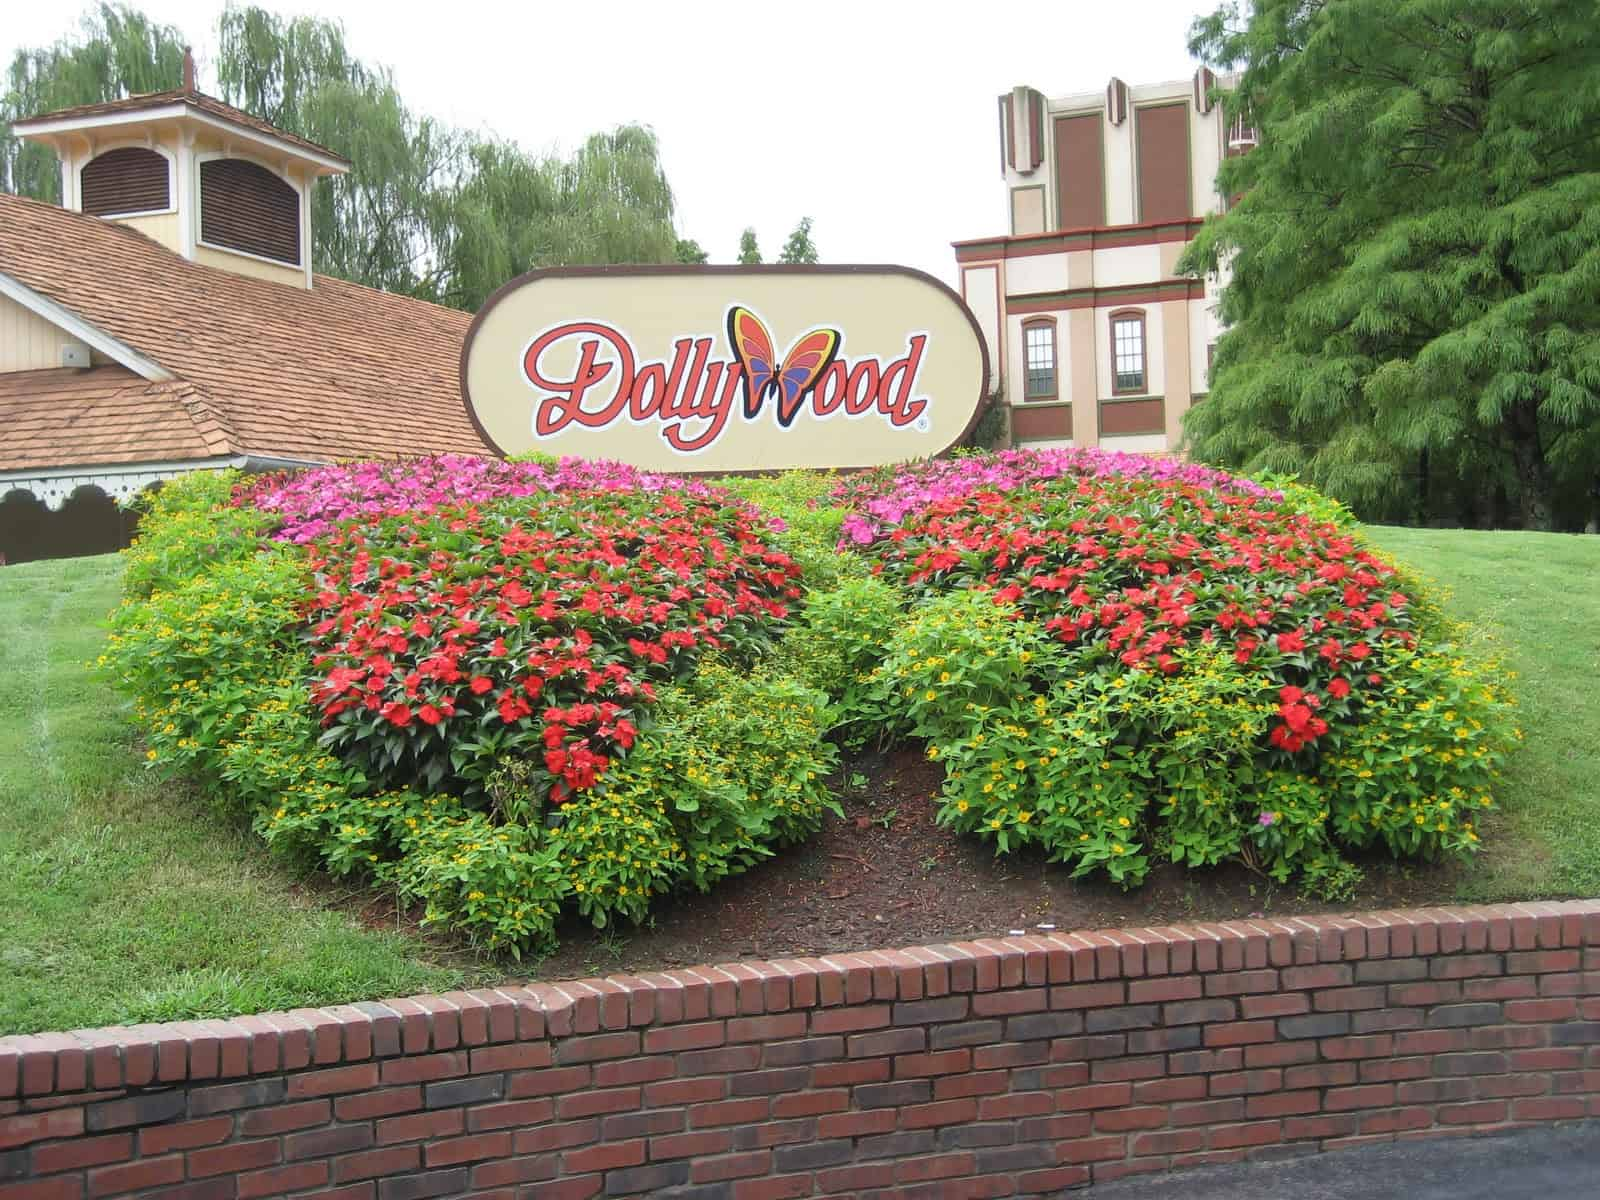 Dollywood Shops Create Their Own Special Memories